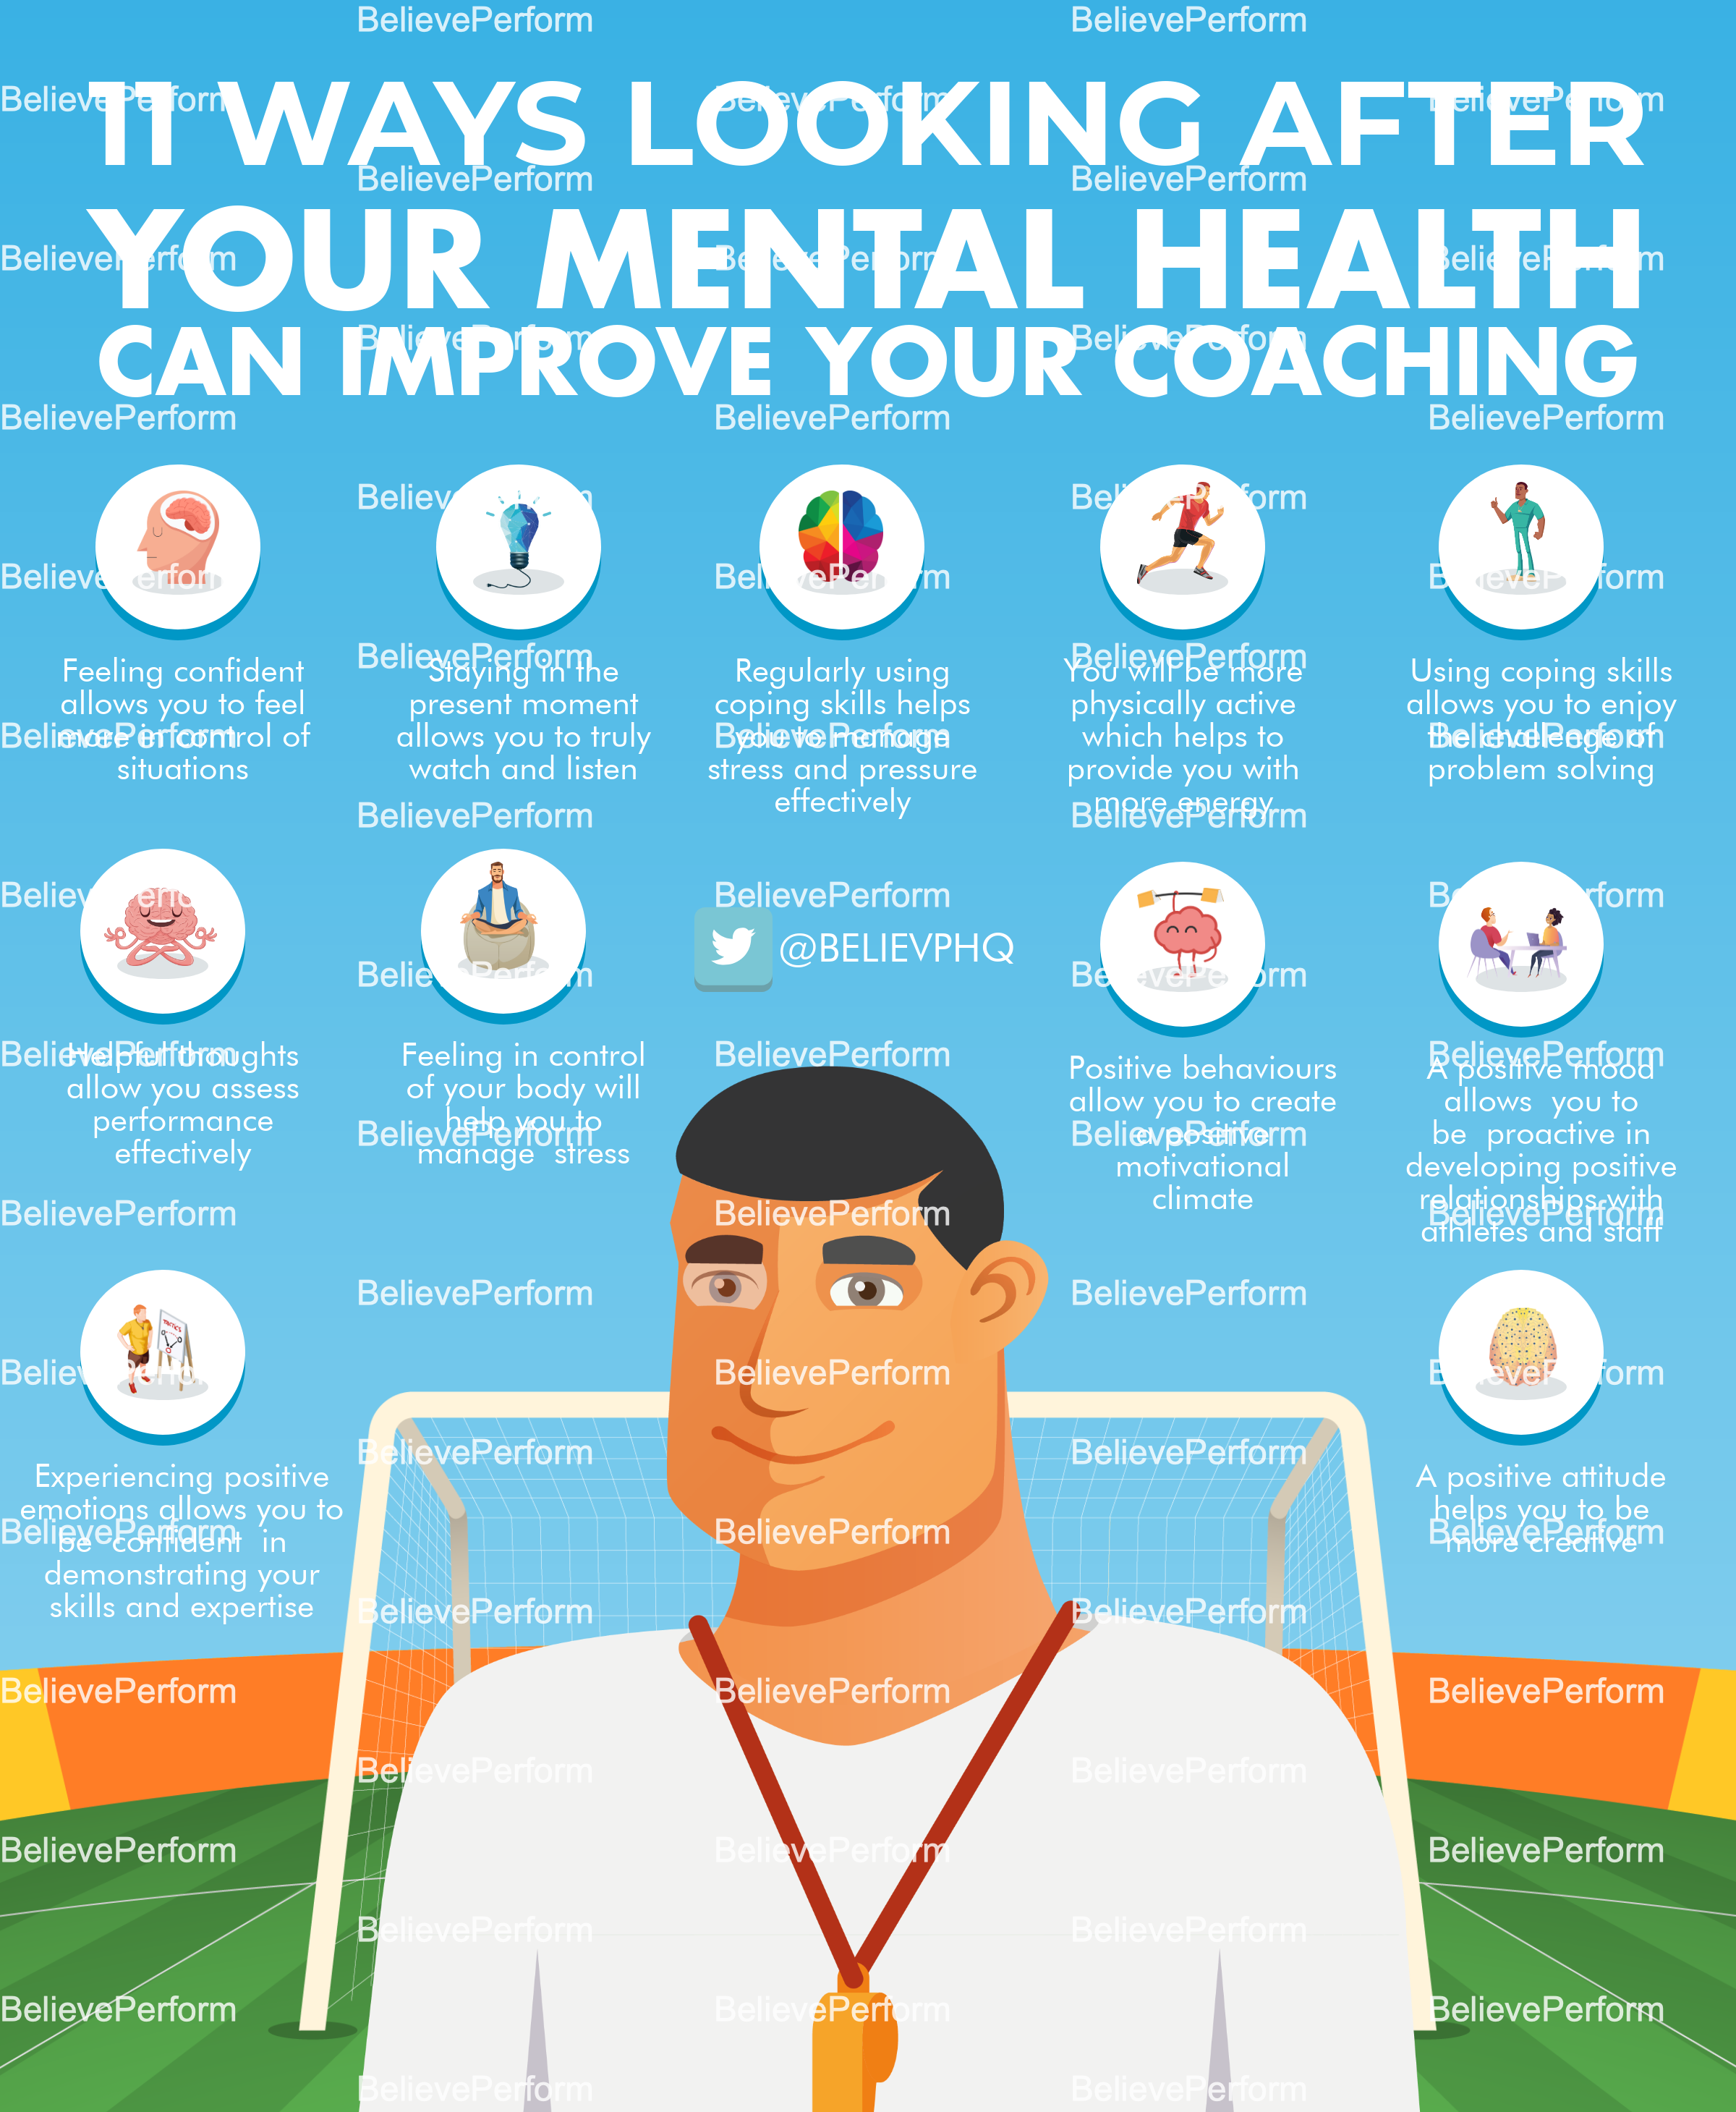 11 Ways Looking After Your Mental Health Can Improve Your